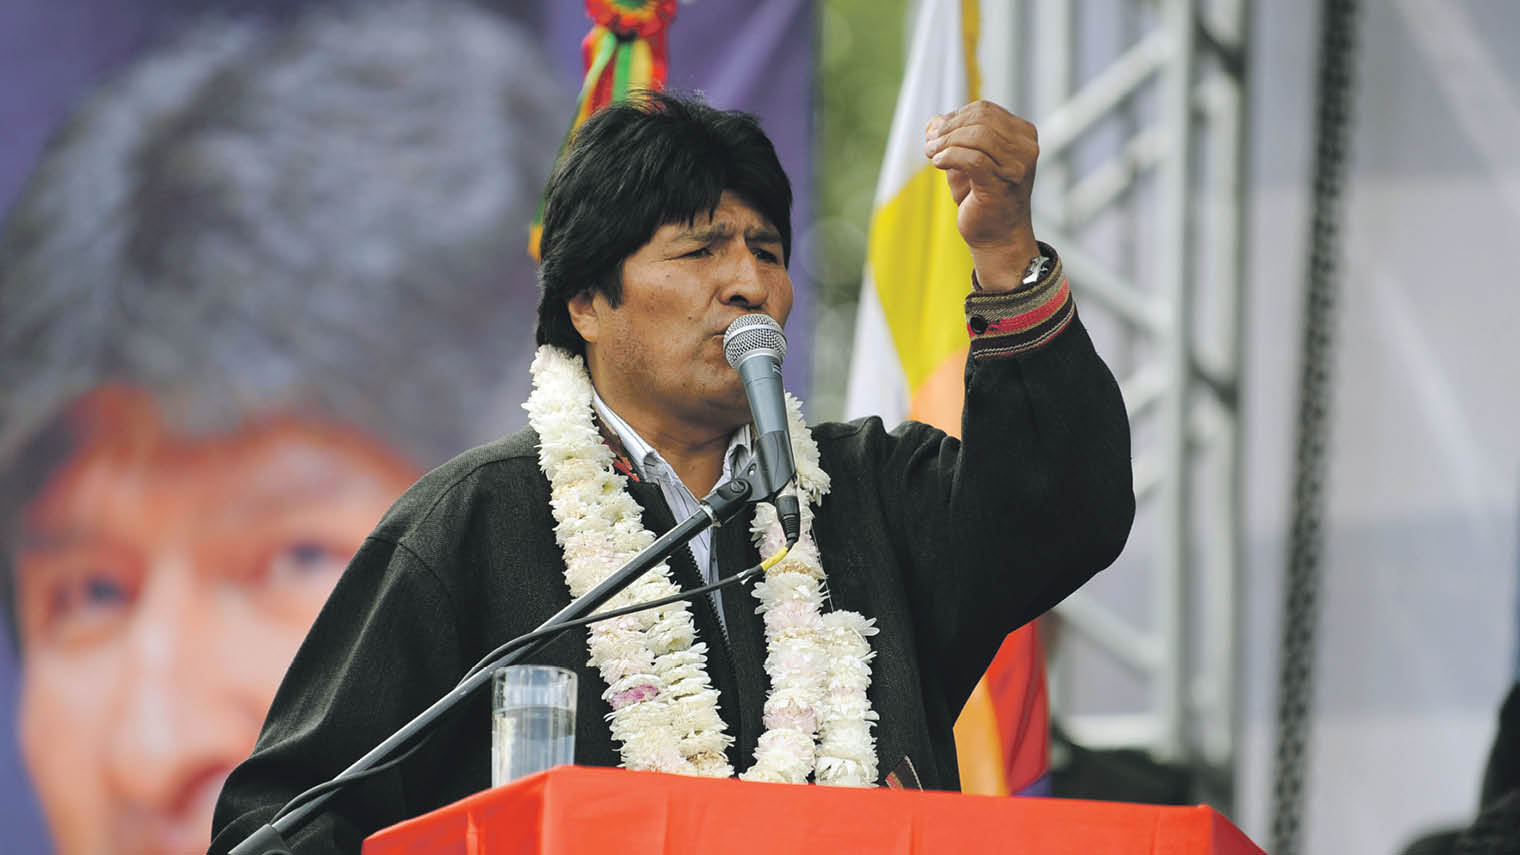 Bolivian president Evo Morales giving speech